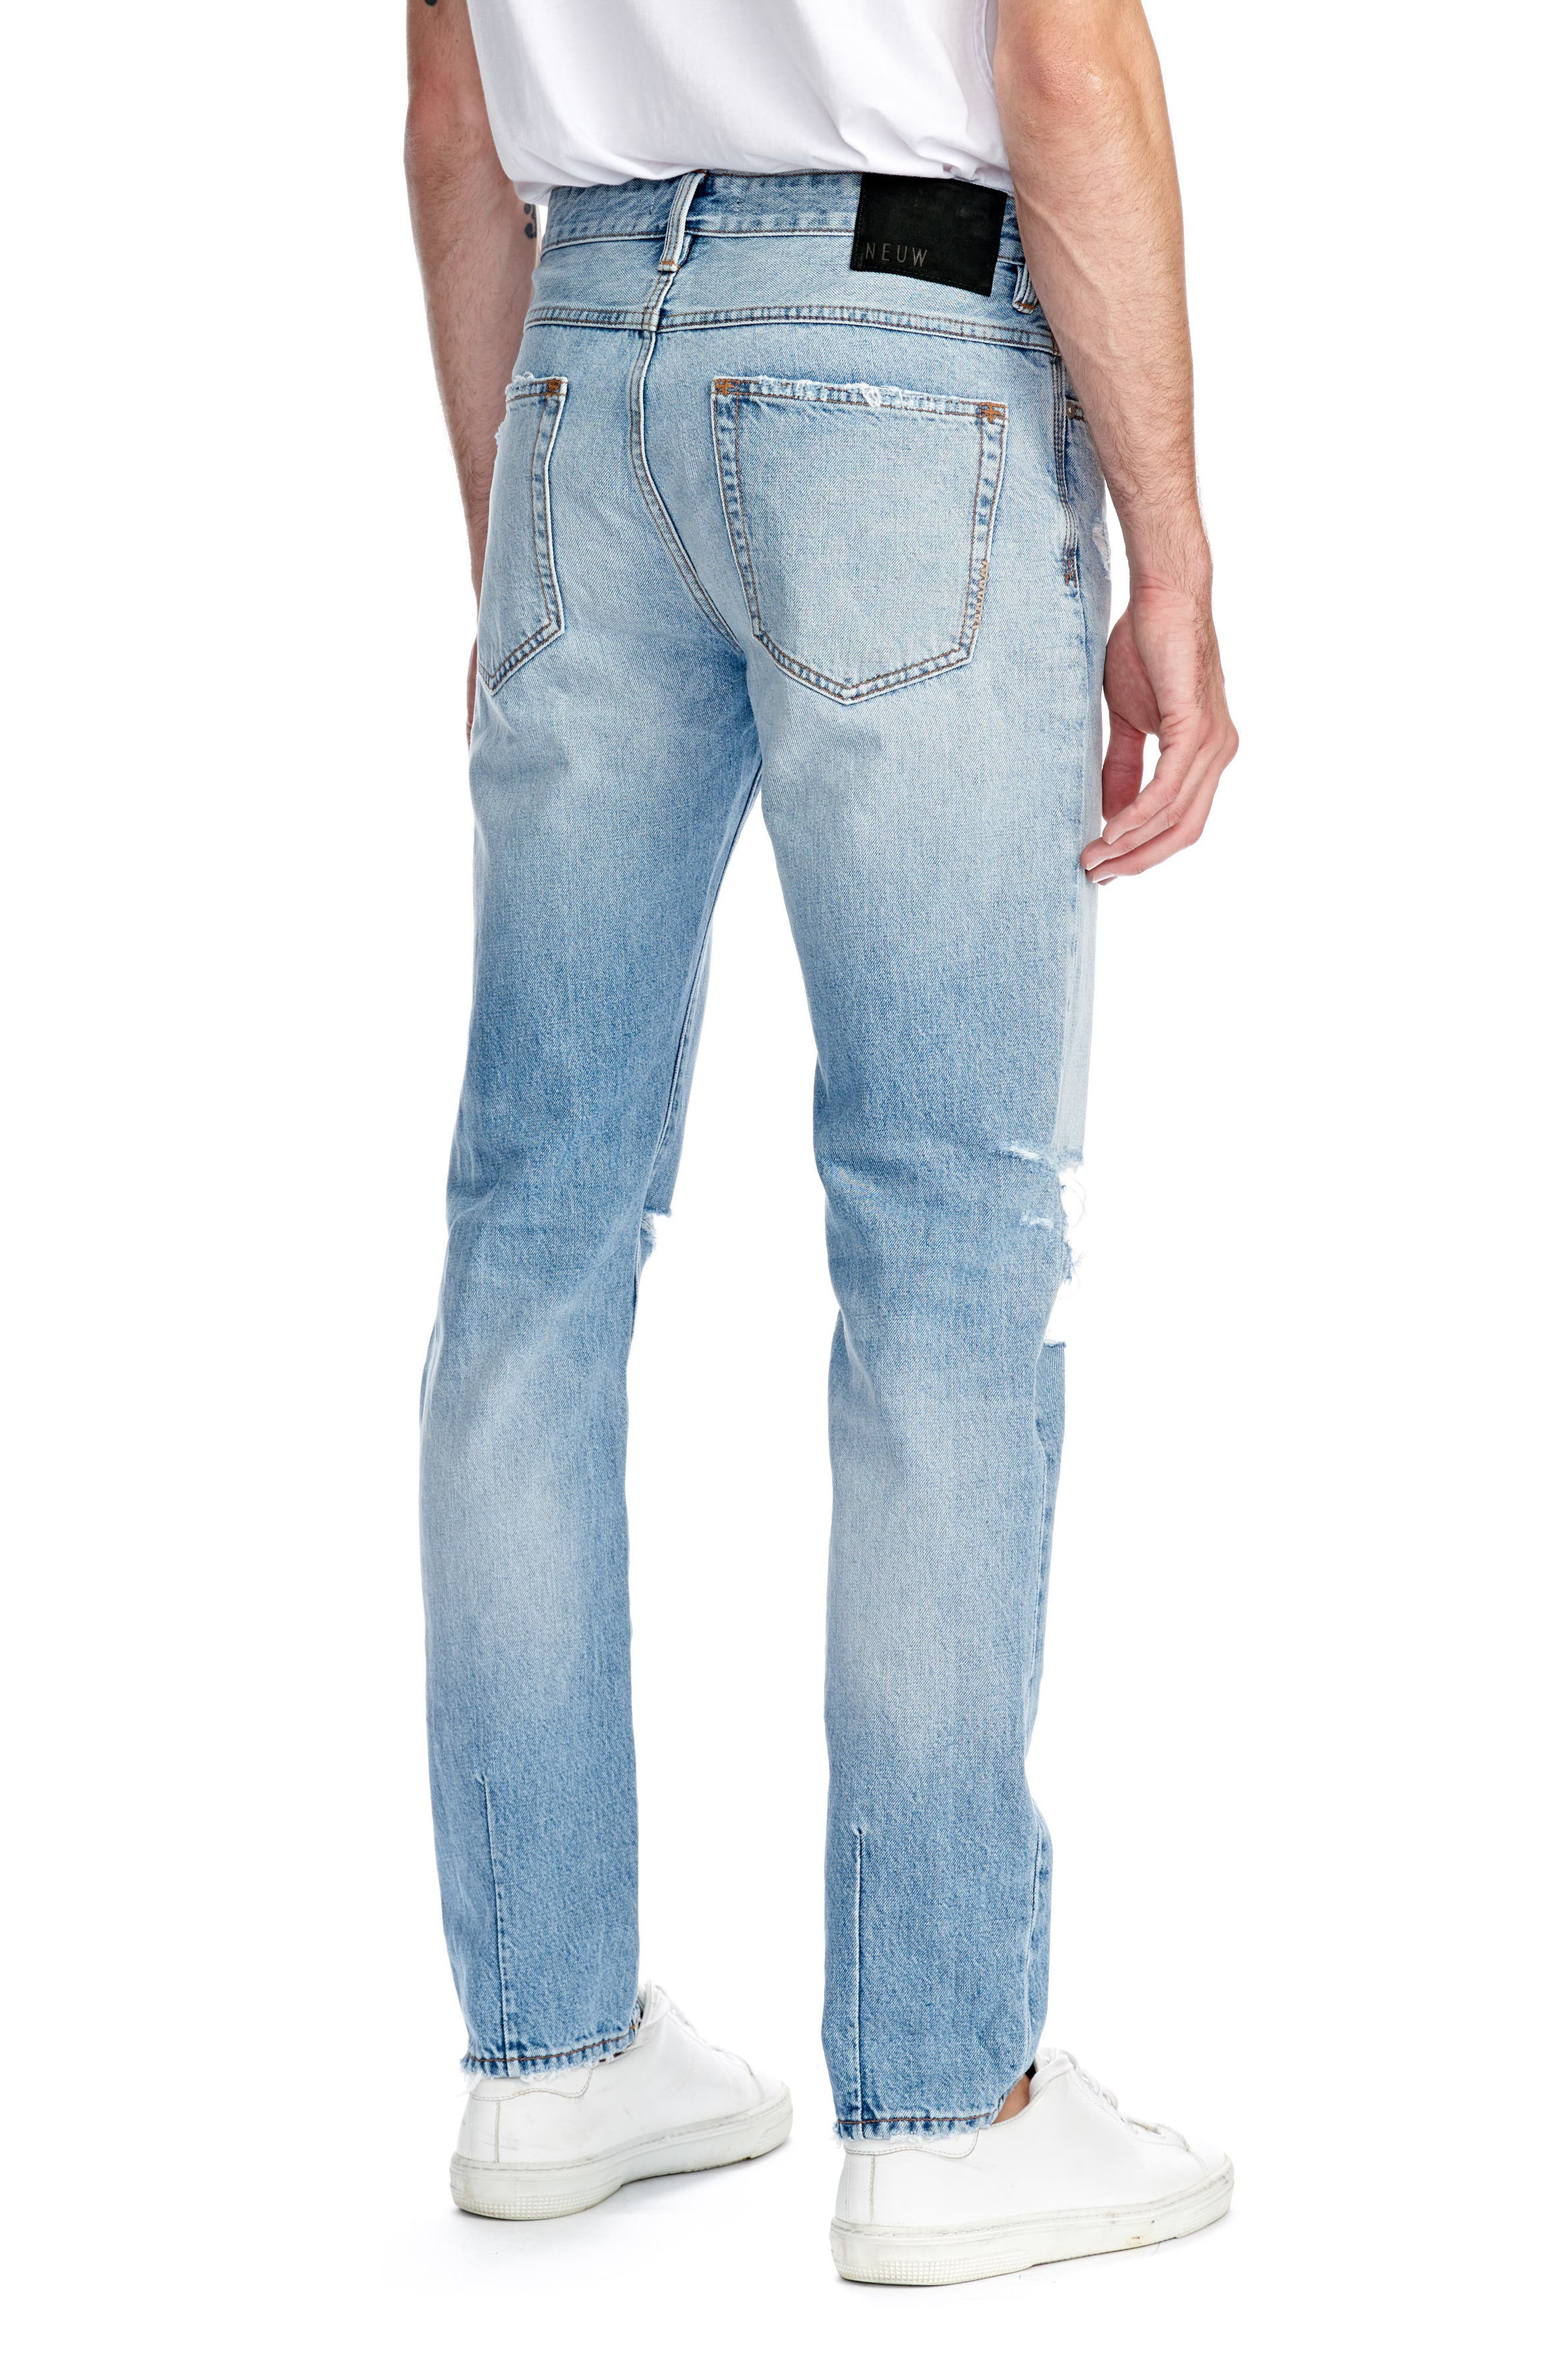 Lou Slim Fit Jeans,                             Alternate thumbnail 2, color,                             405